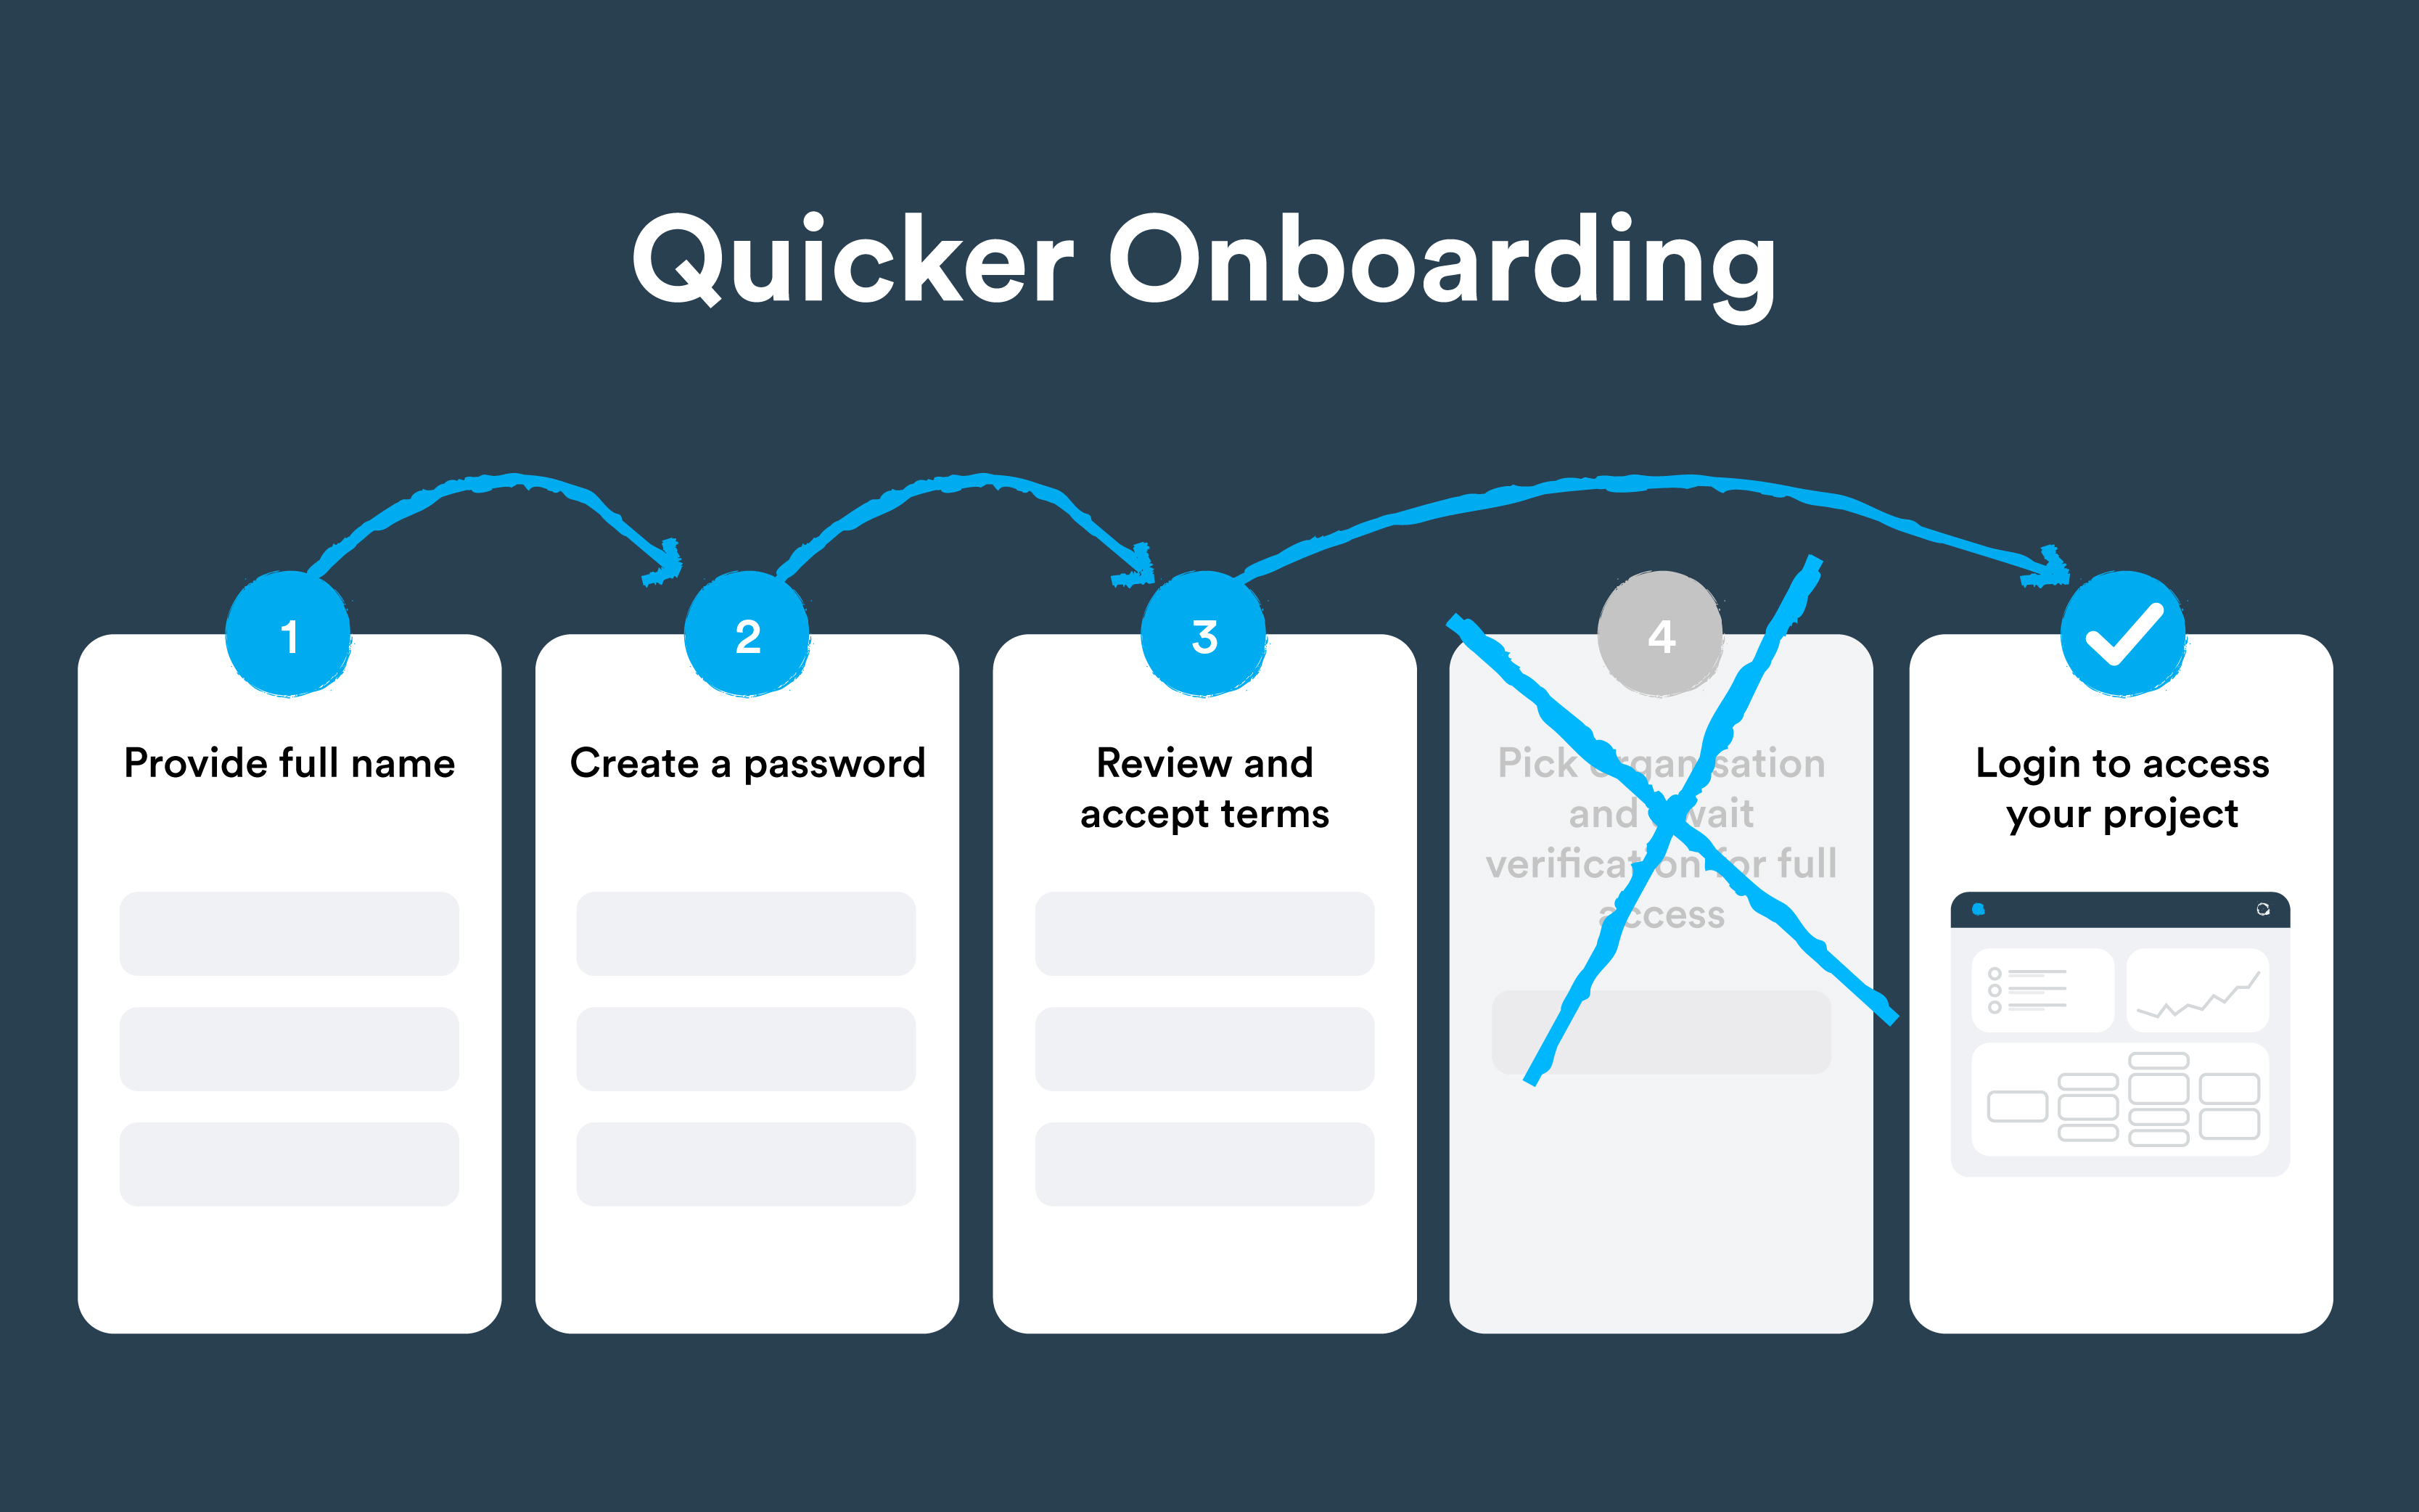 Quicker onboarding for Collaboratives